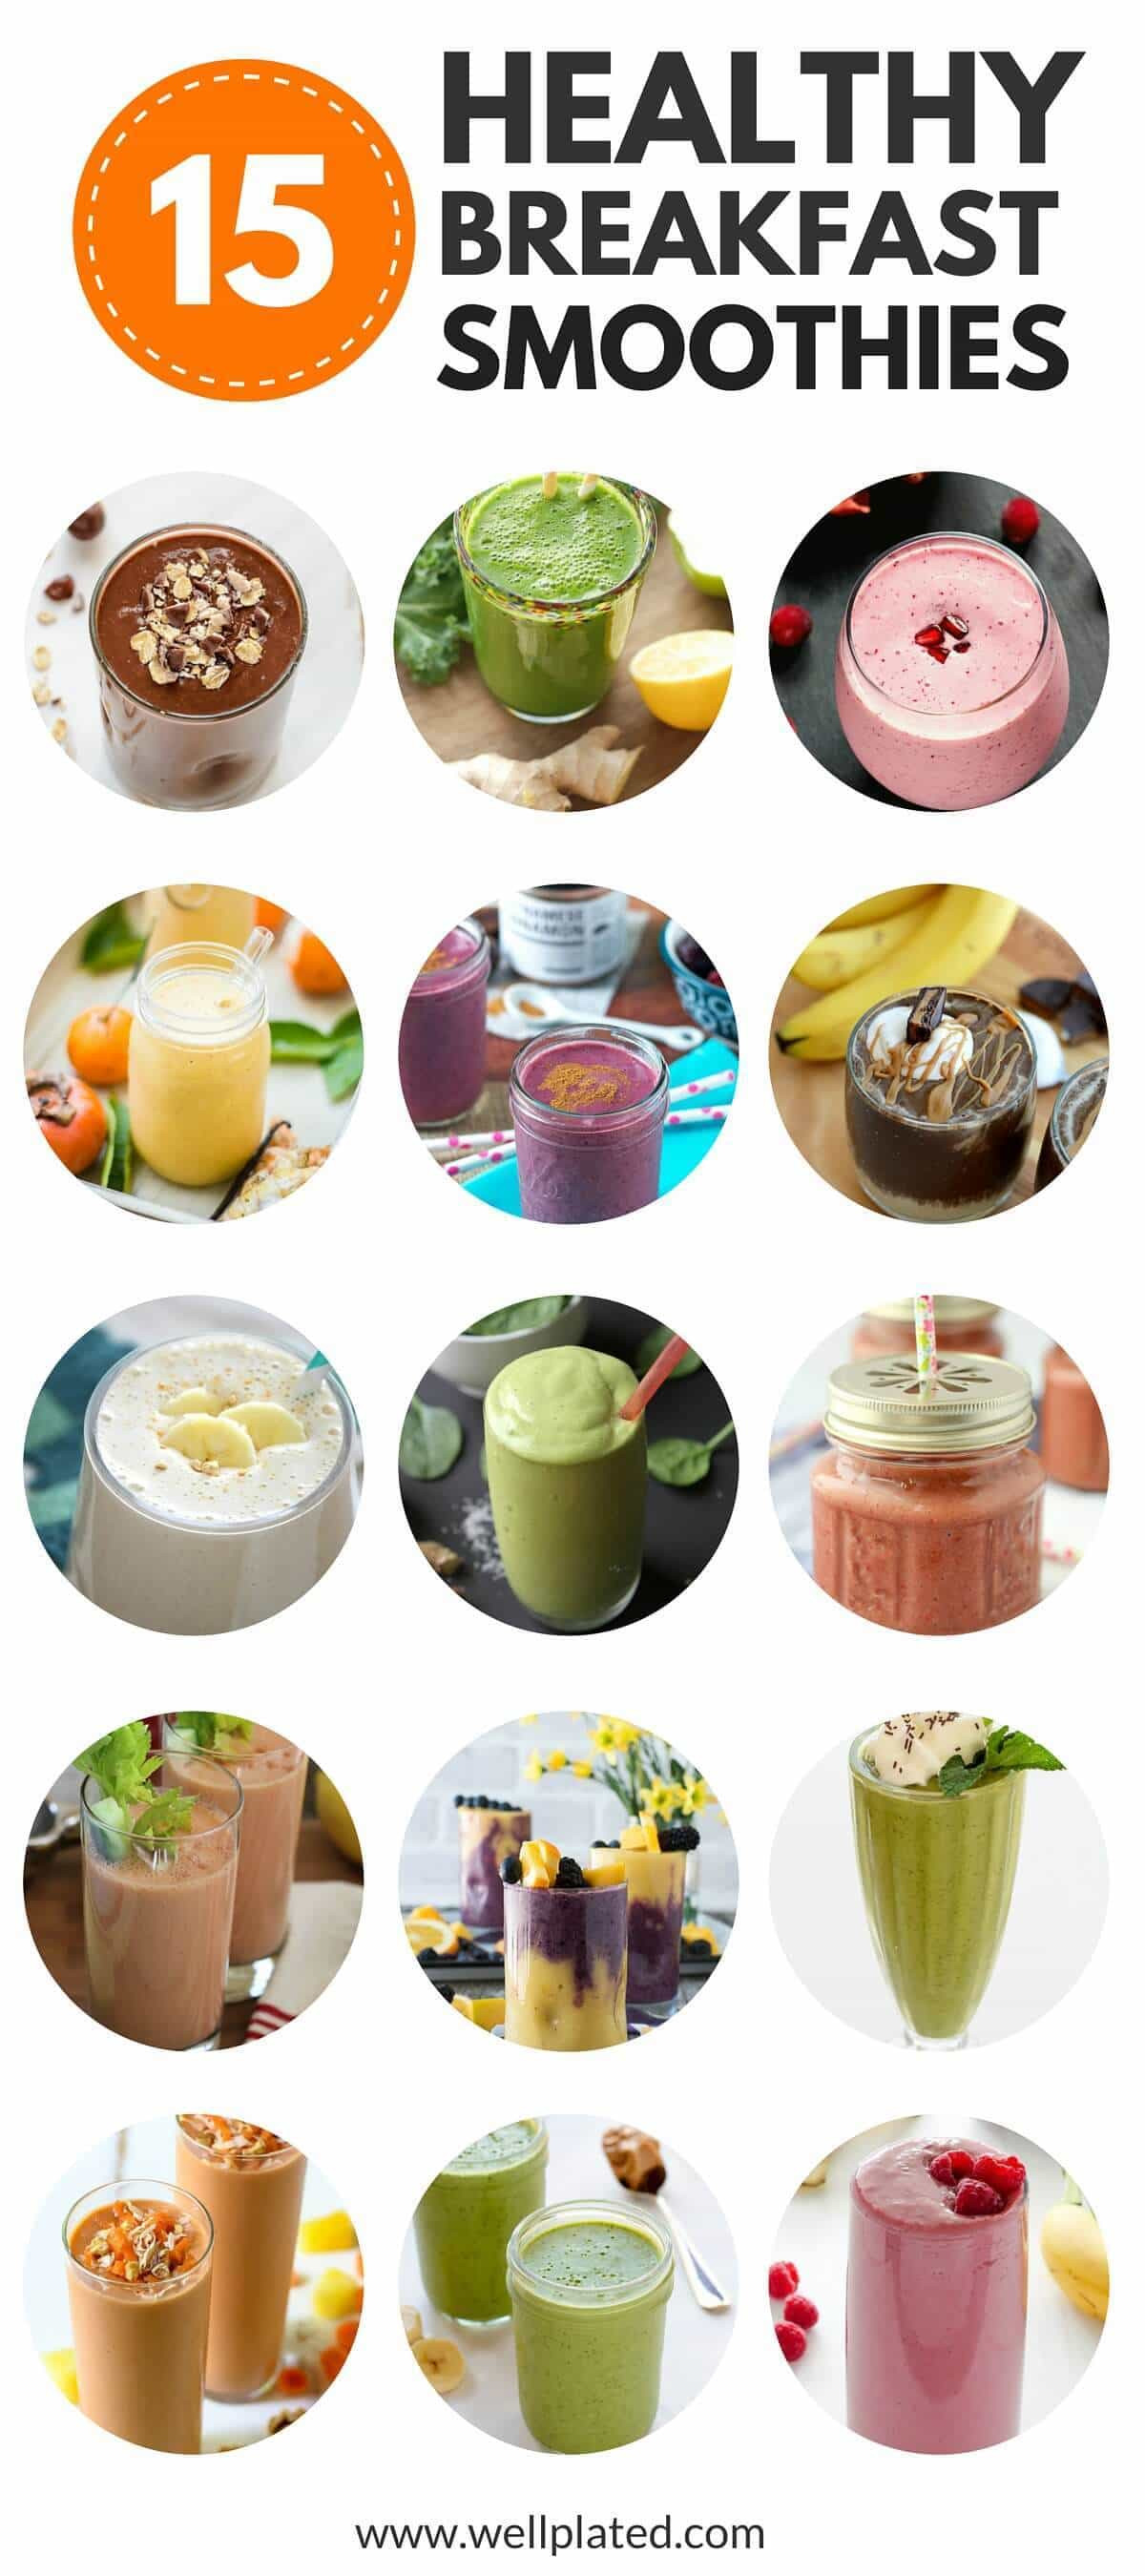 Good Healthy Smoothies For Breakfast  The Best 15 Healthy Breakfast Smoothies